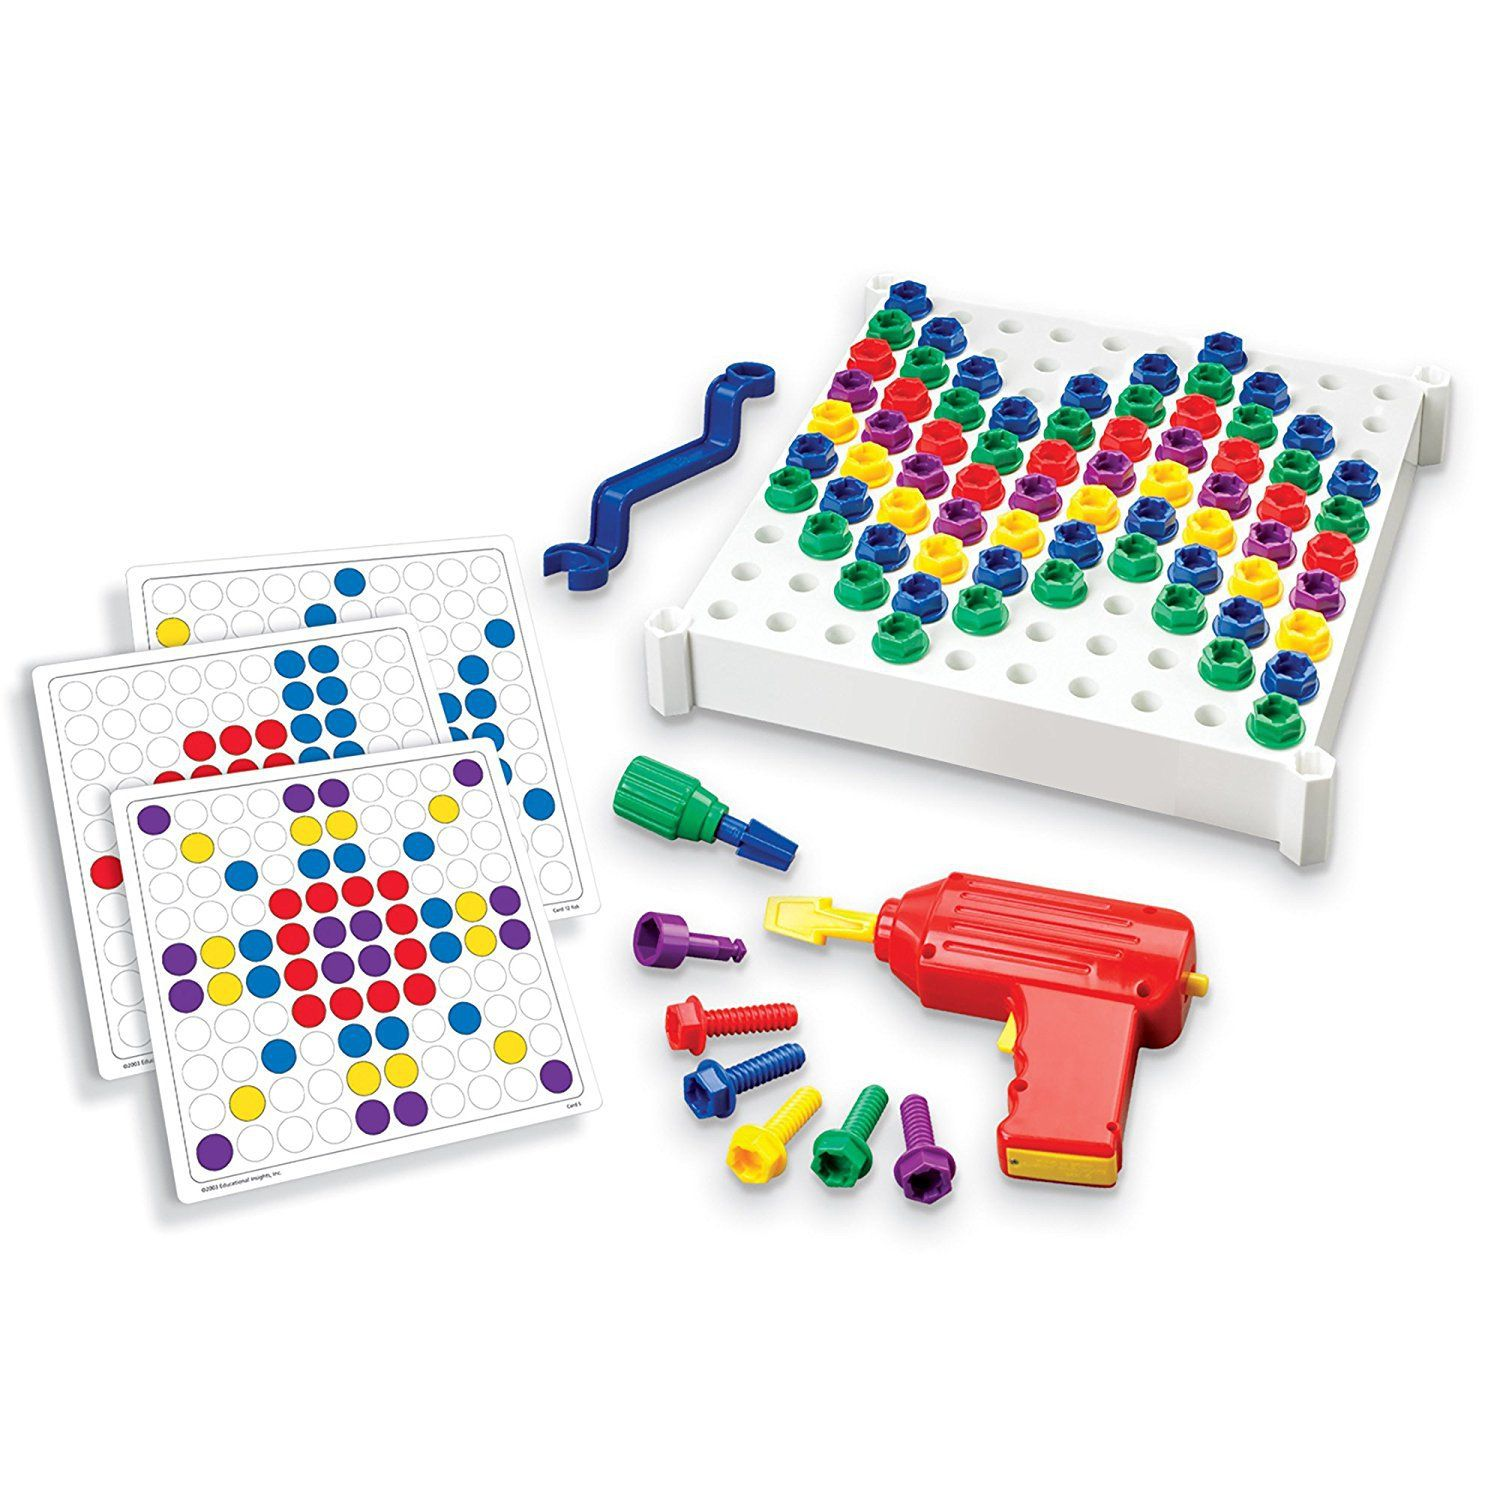 27 Awesome STEM & Skill Learning Toys Toddlers Will Love